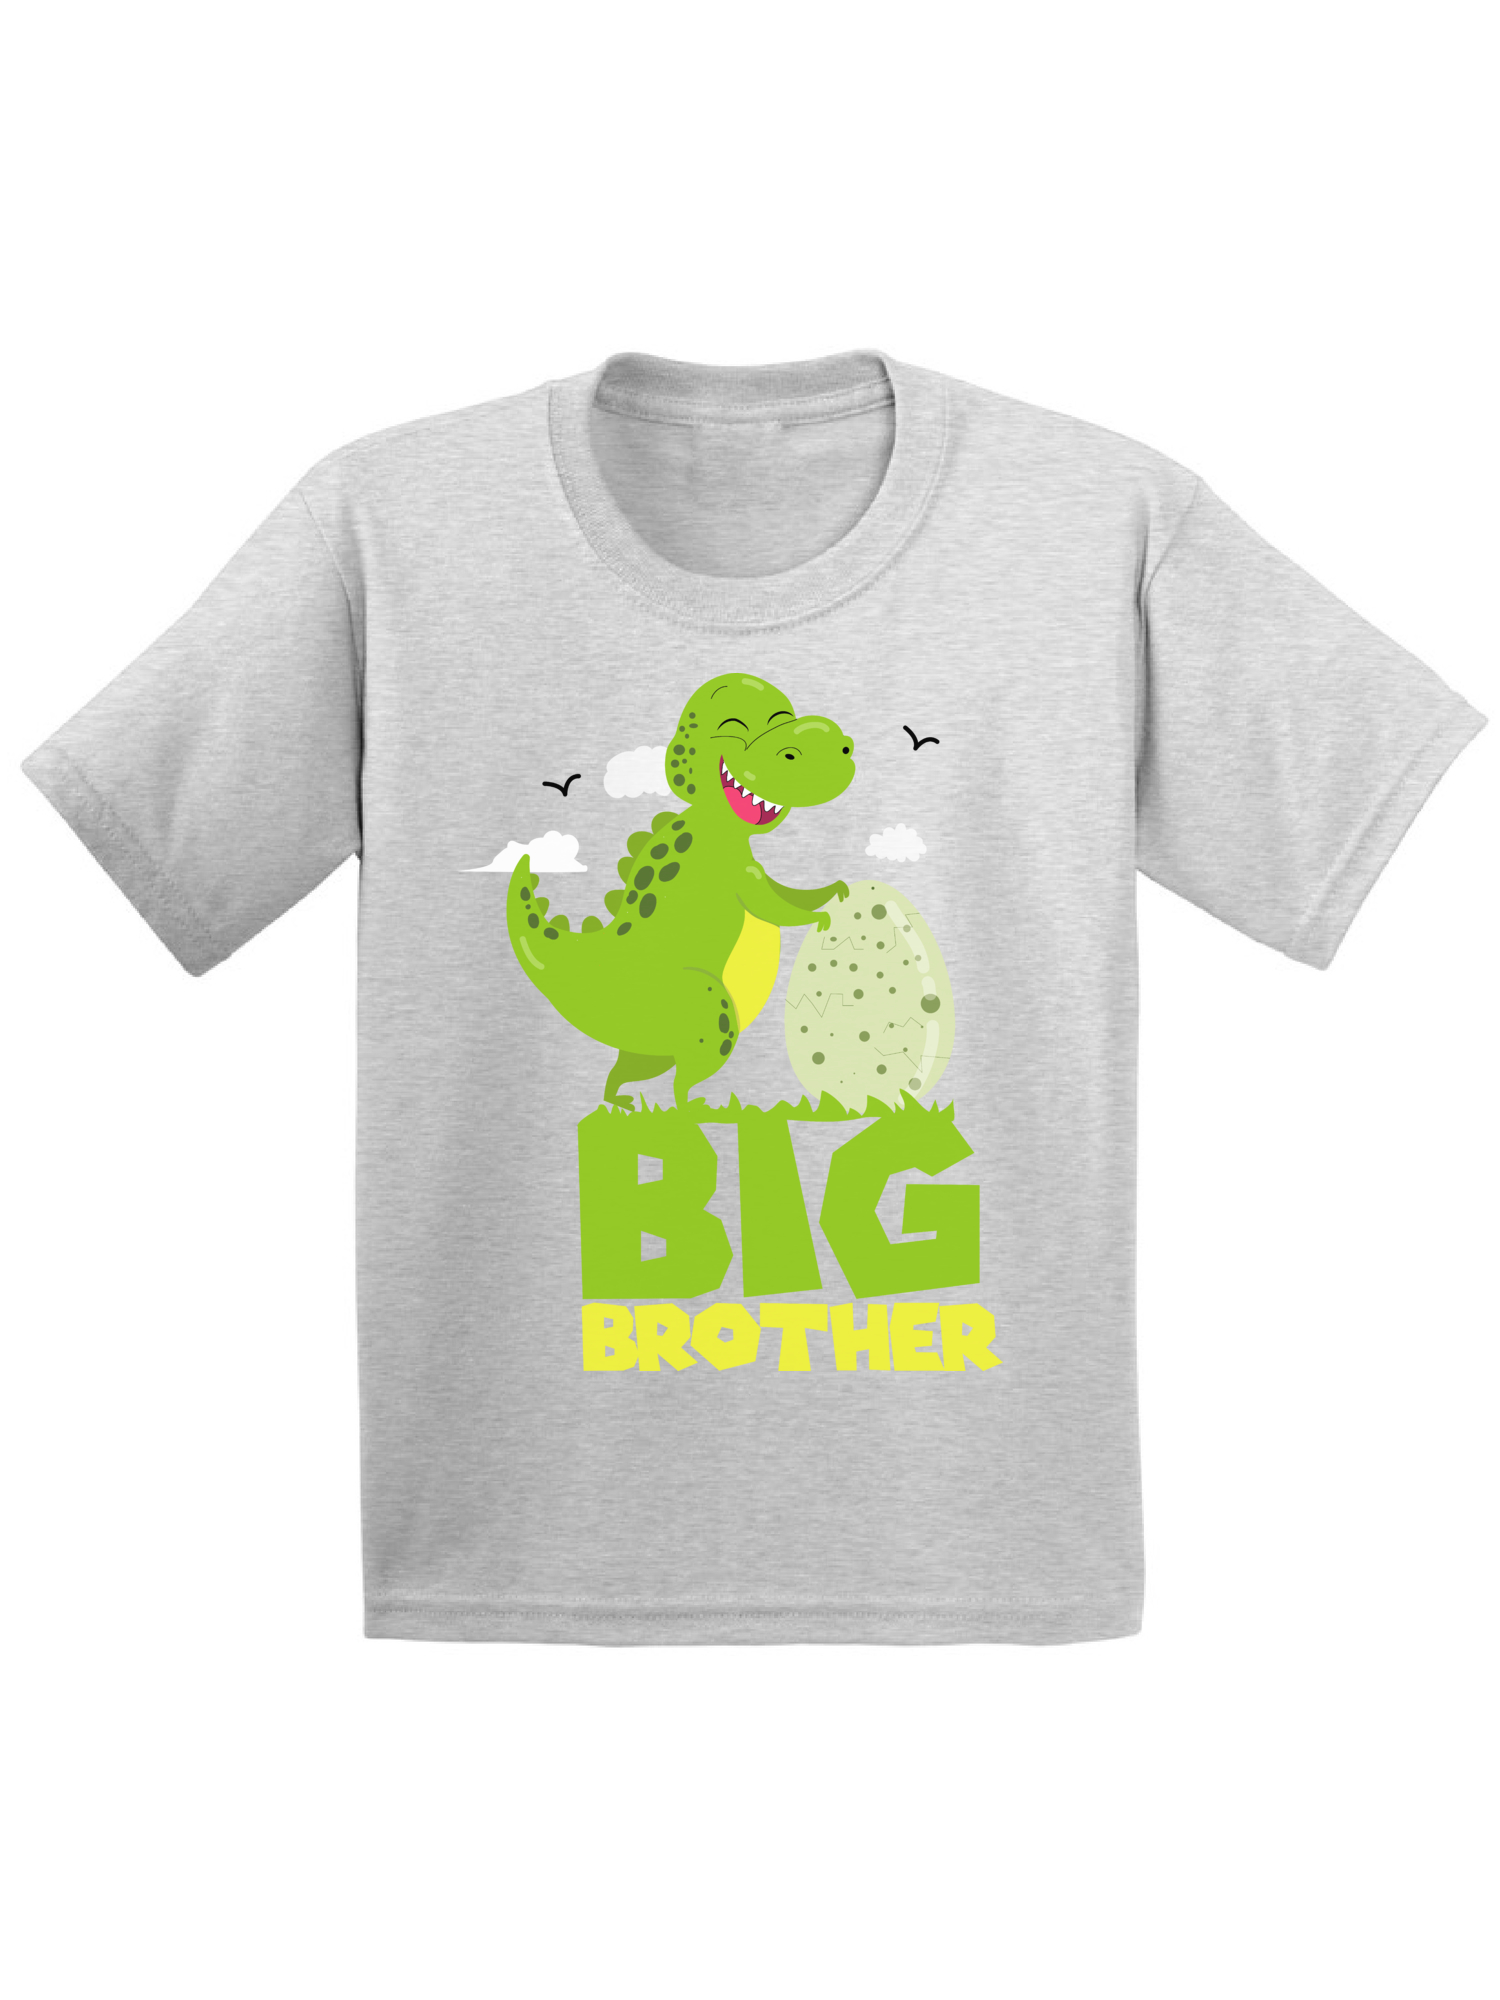 Gift for Big Brother 2020 T-Rex Boy Toddler Kids T-Shirt Siblings